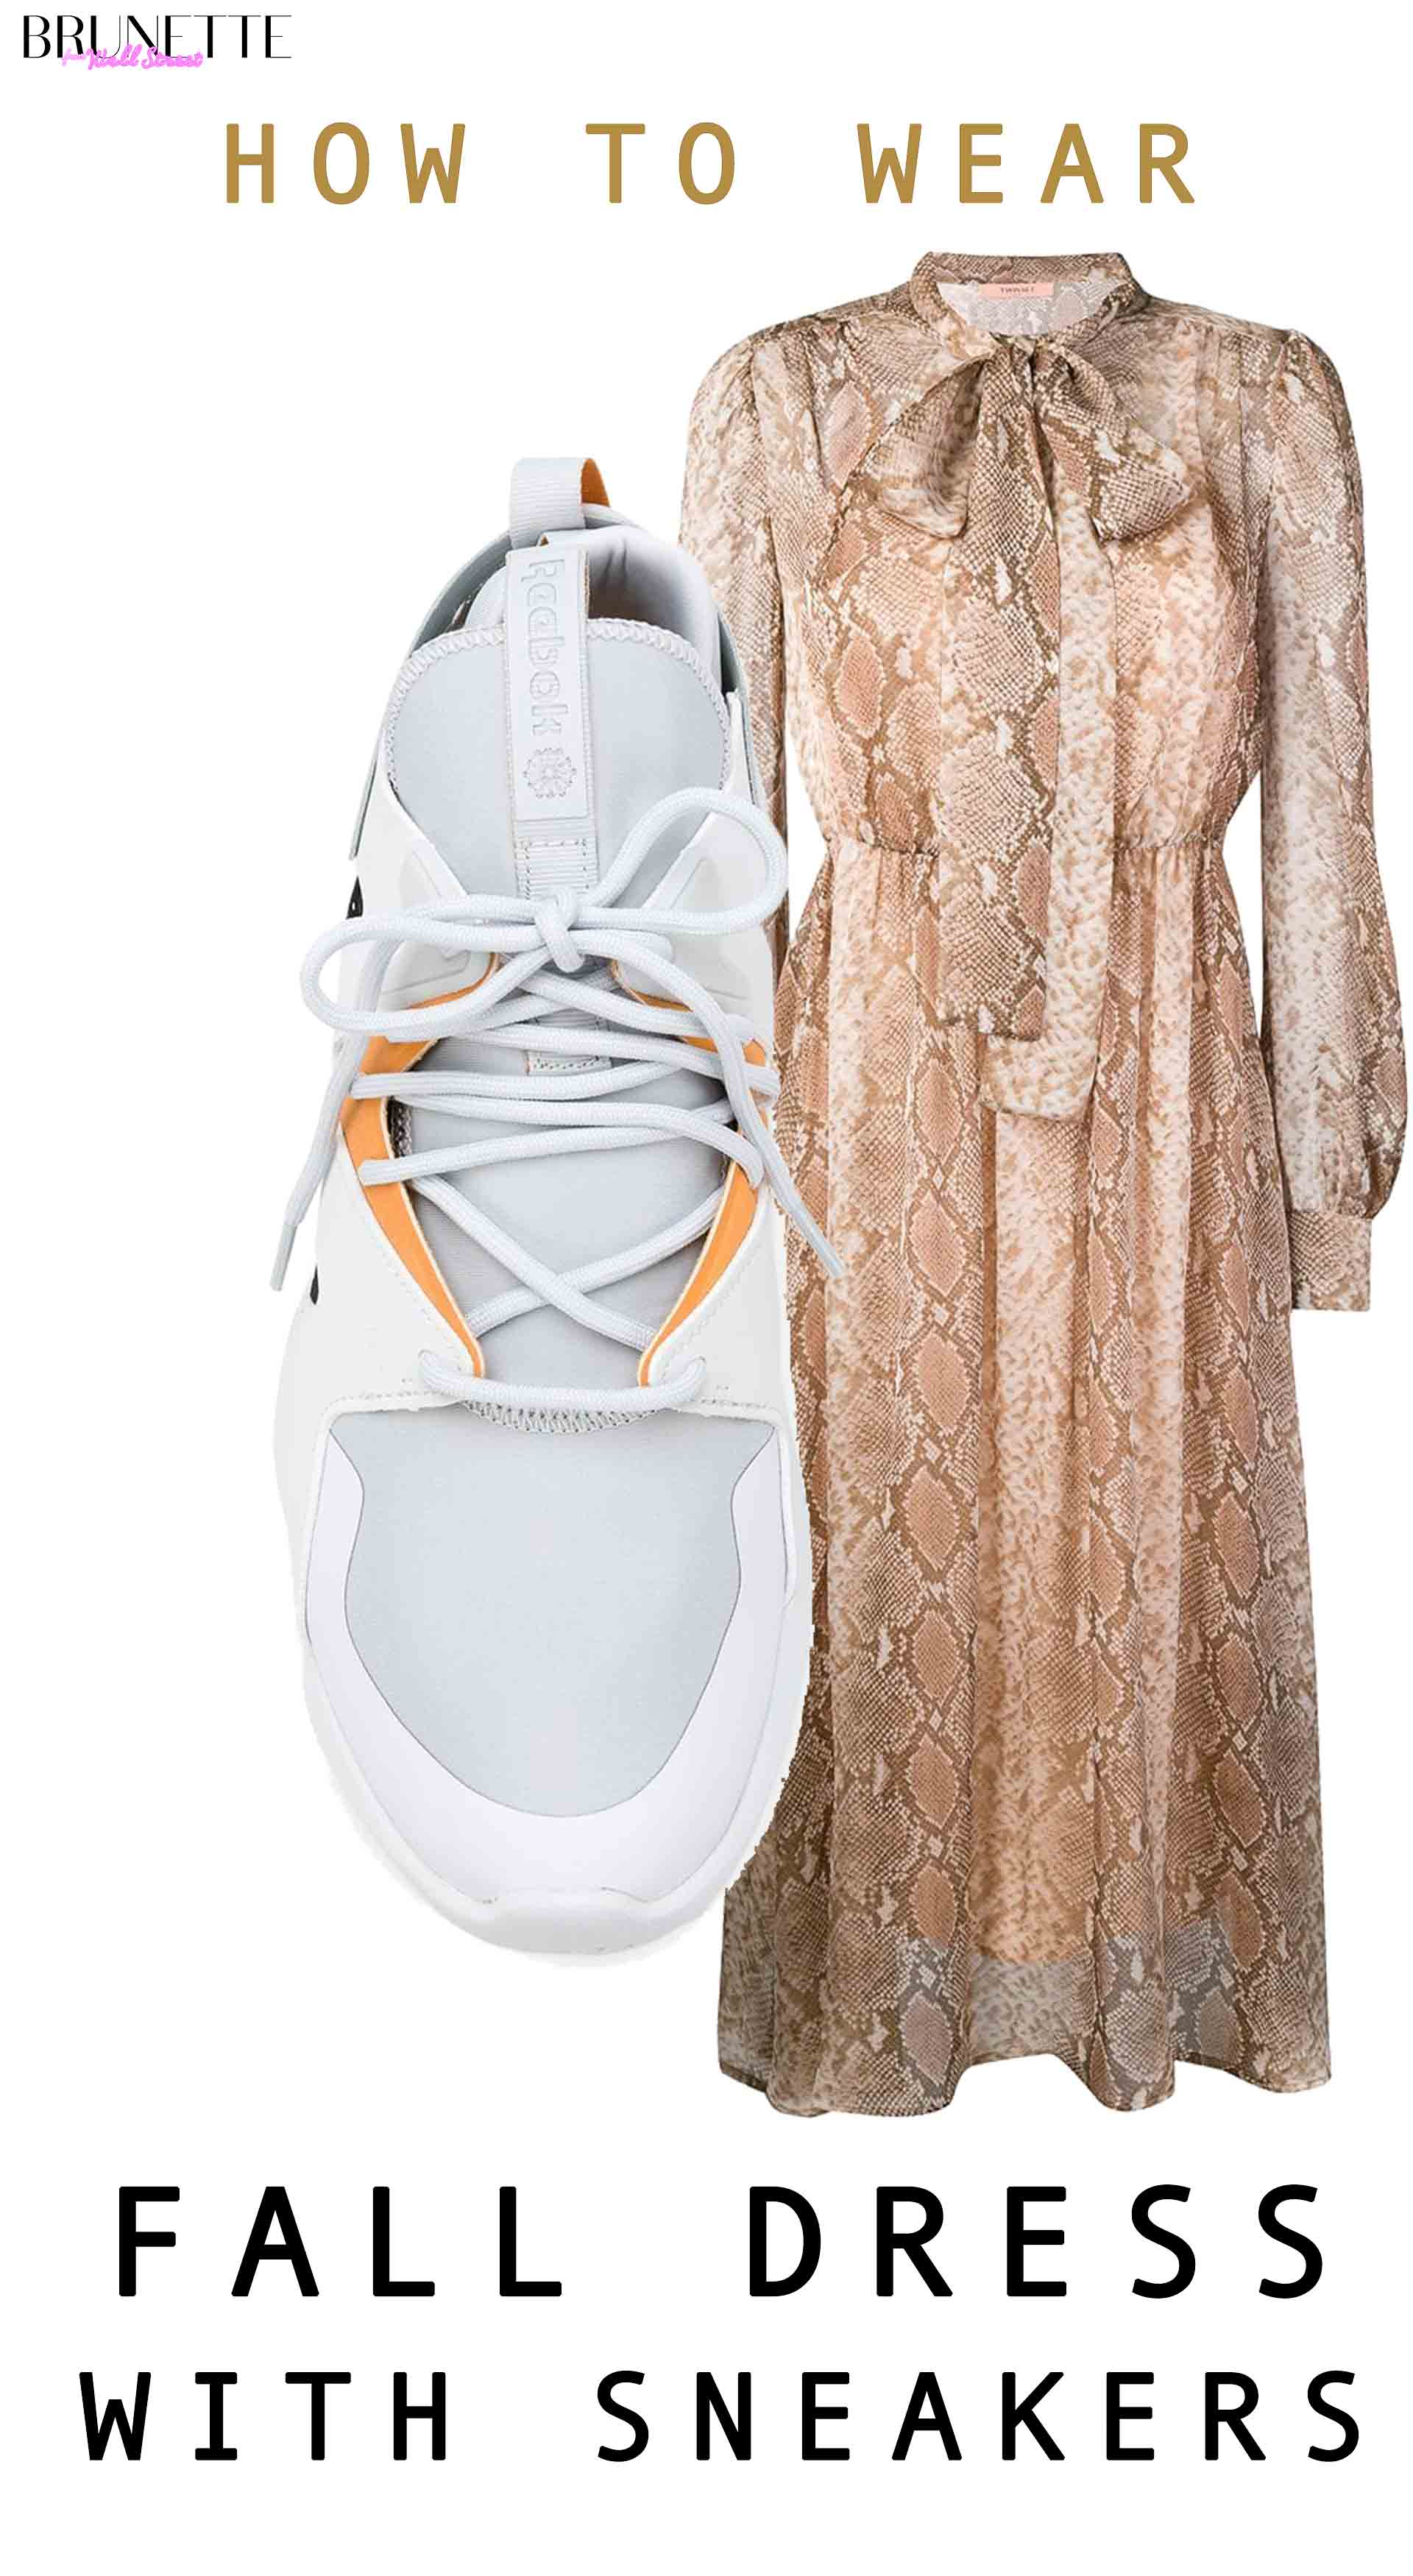 Reebok Instapump OG sneaker, Twin-Set snake printed midi dress with text overlay How to wear fall dress with chunky sneakers